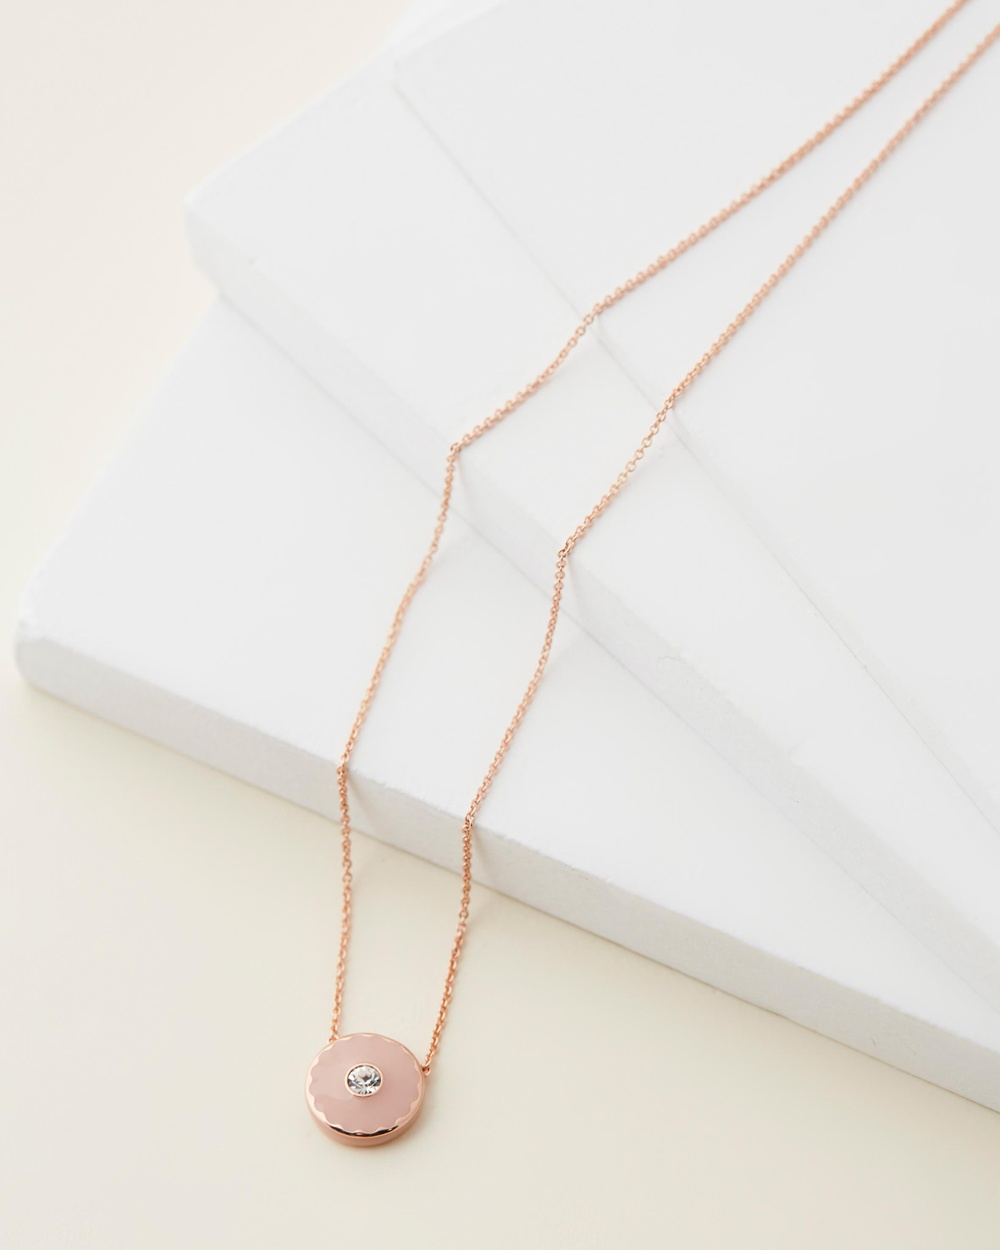 The Marc Jacobs Medallion Pendant Necklace Jewellery Peach & Rose Gold